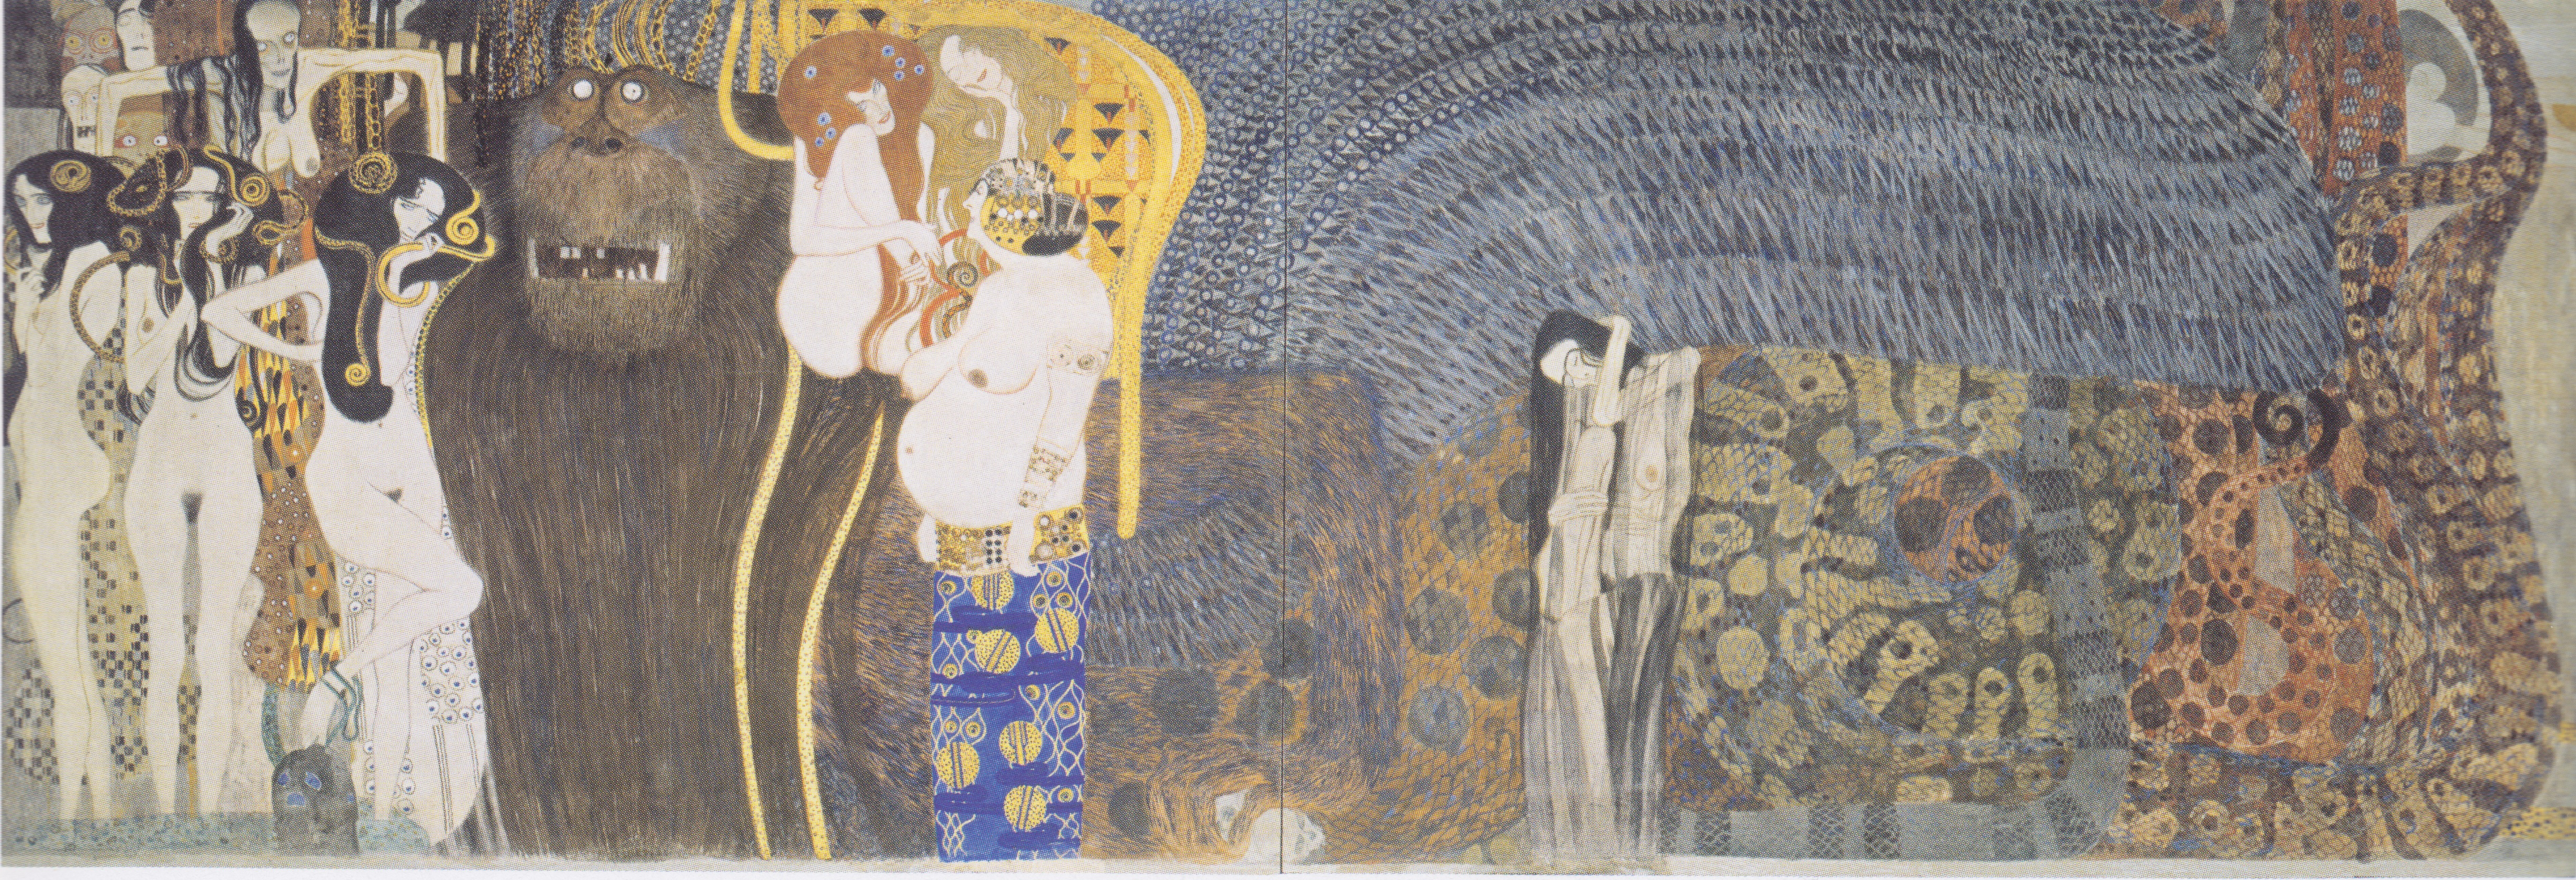 Klimt Fregio Stoclet The Beethoven Frieze The Hostile Powers Far Wall 1902